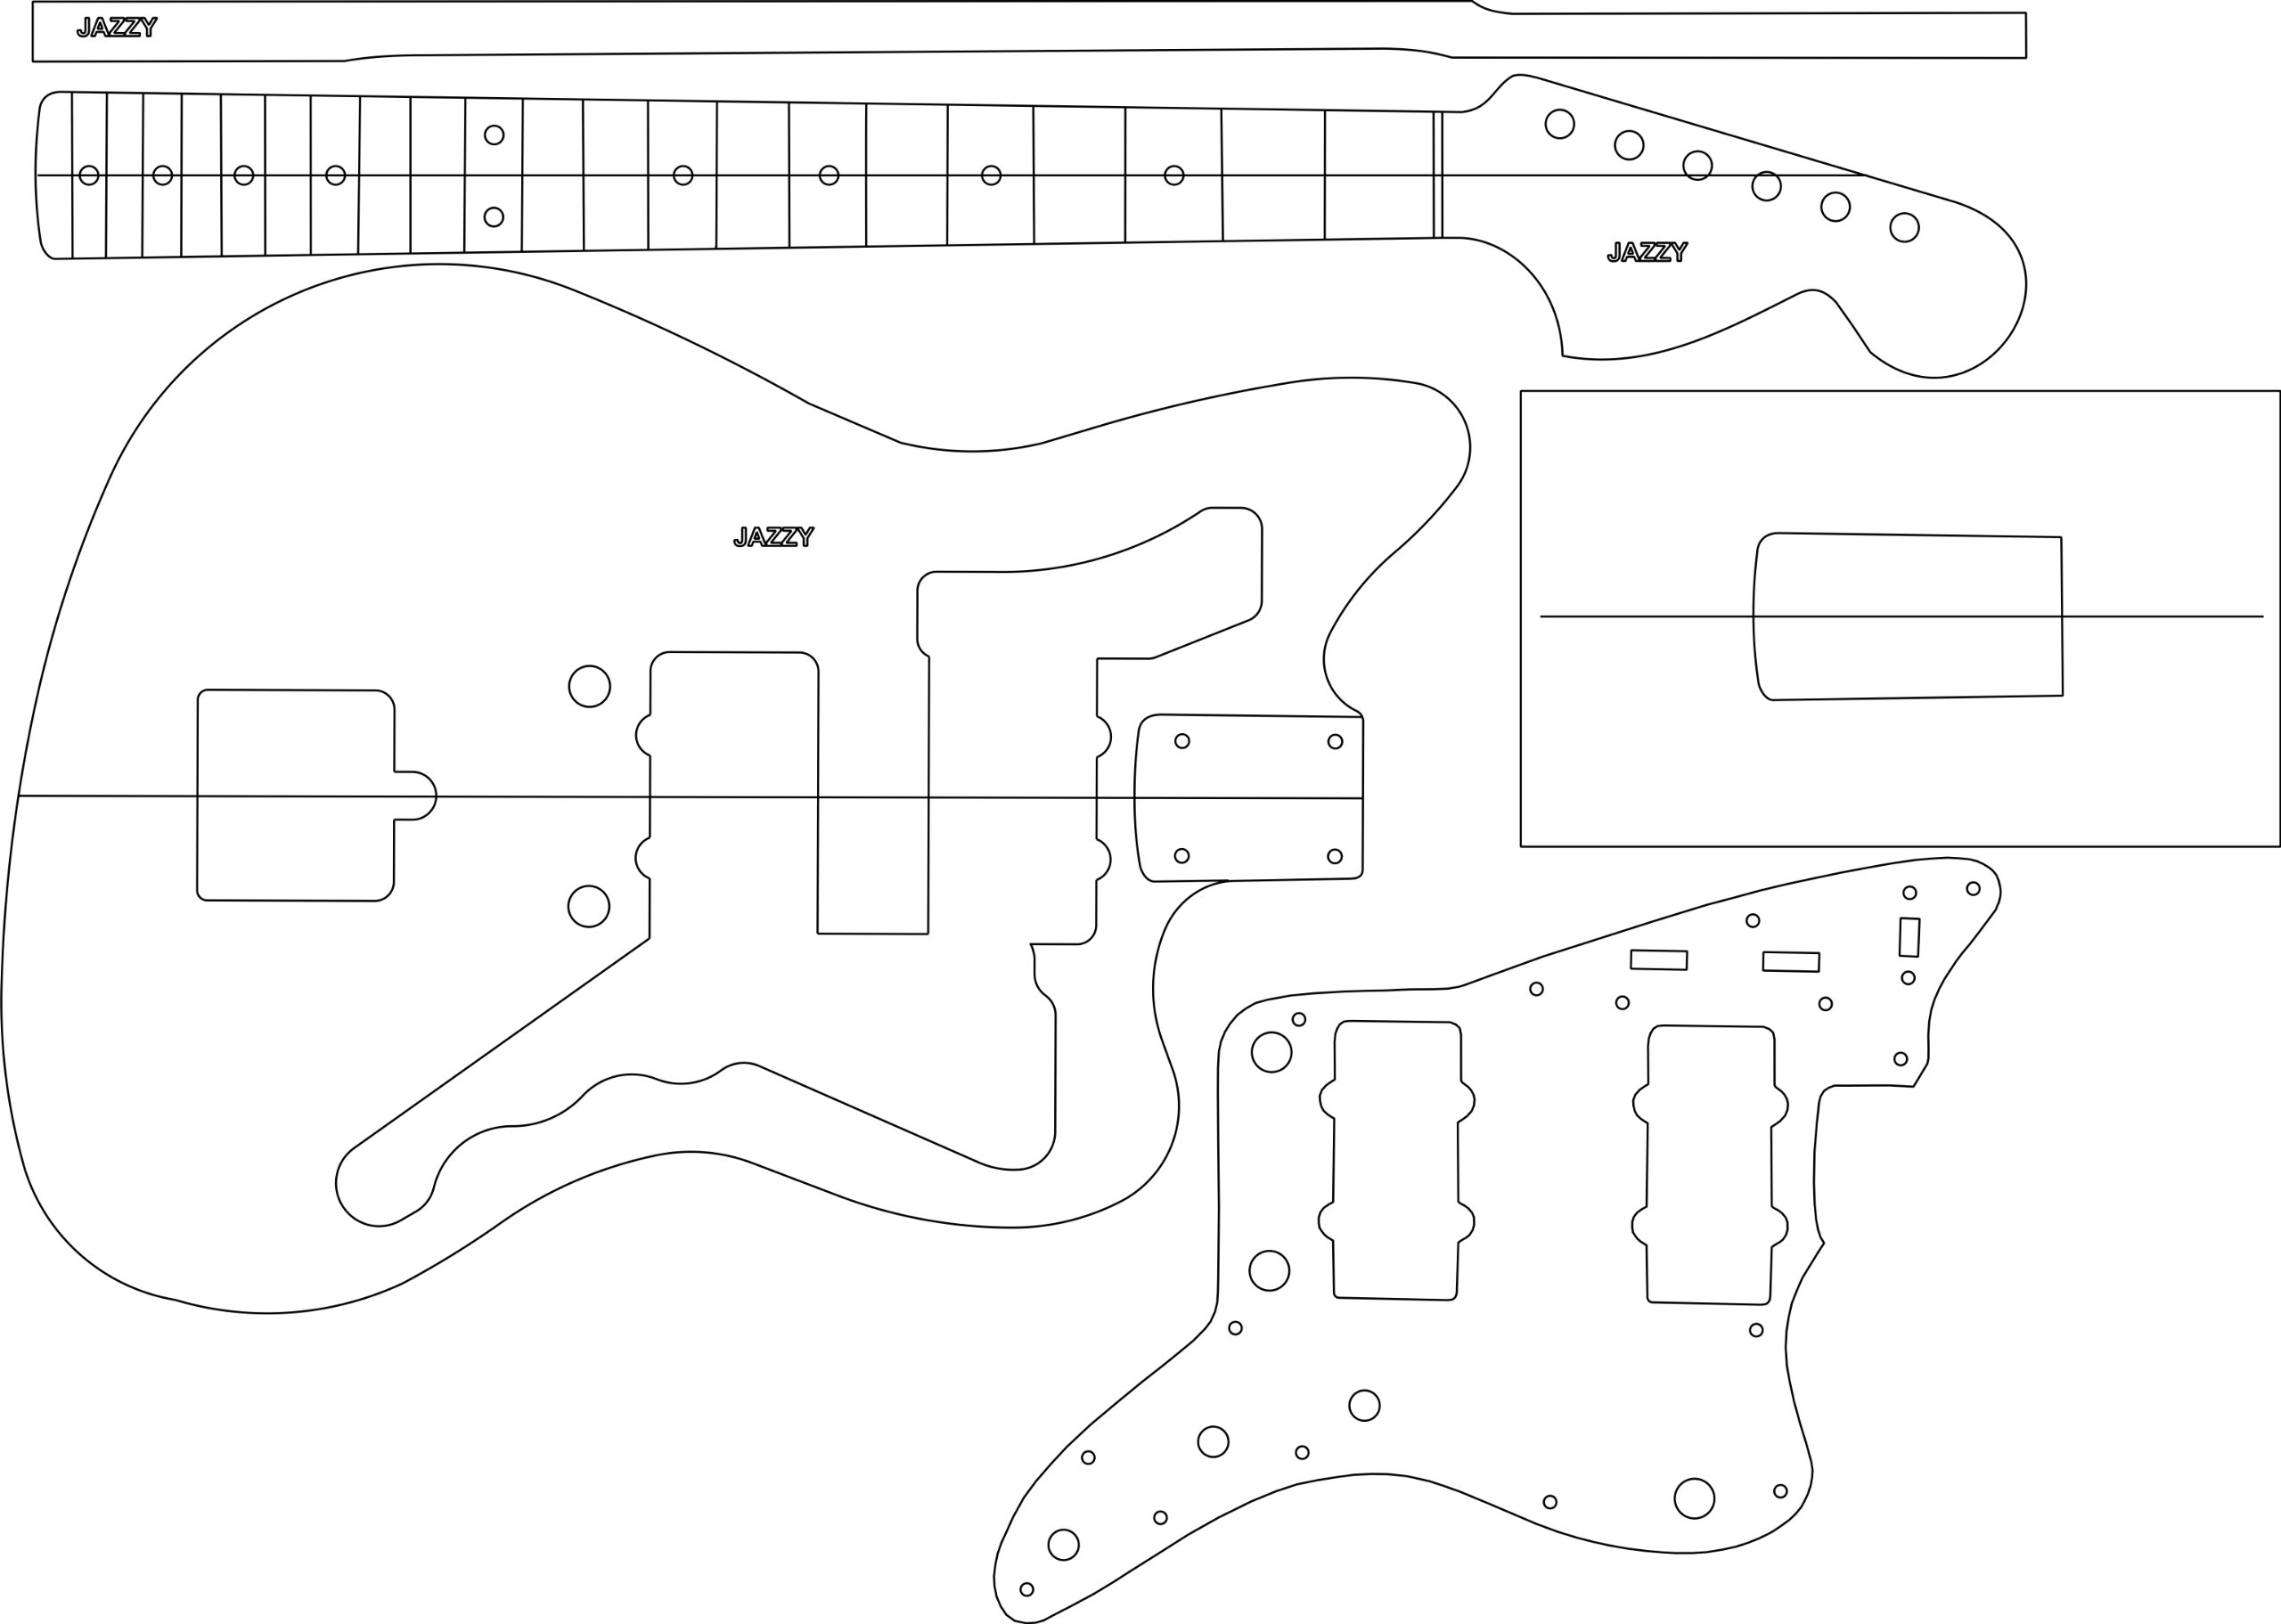 Electric Guitar Routing Template - Jazzy